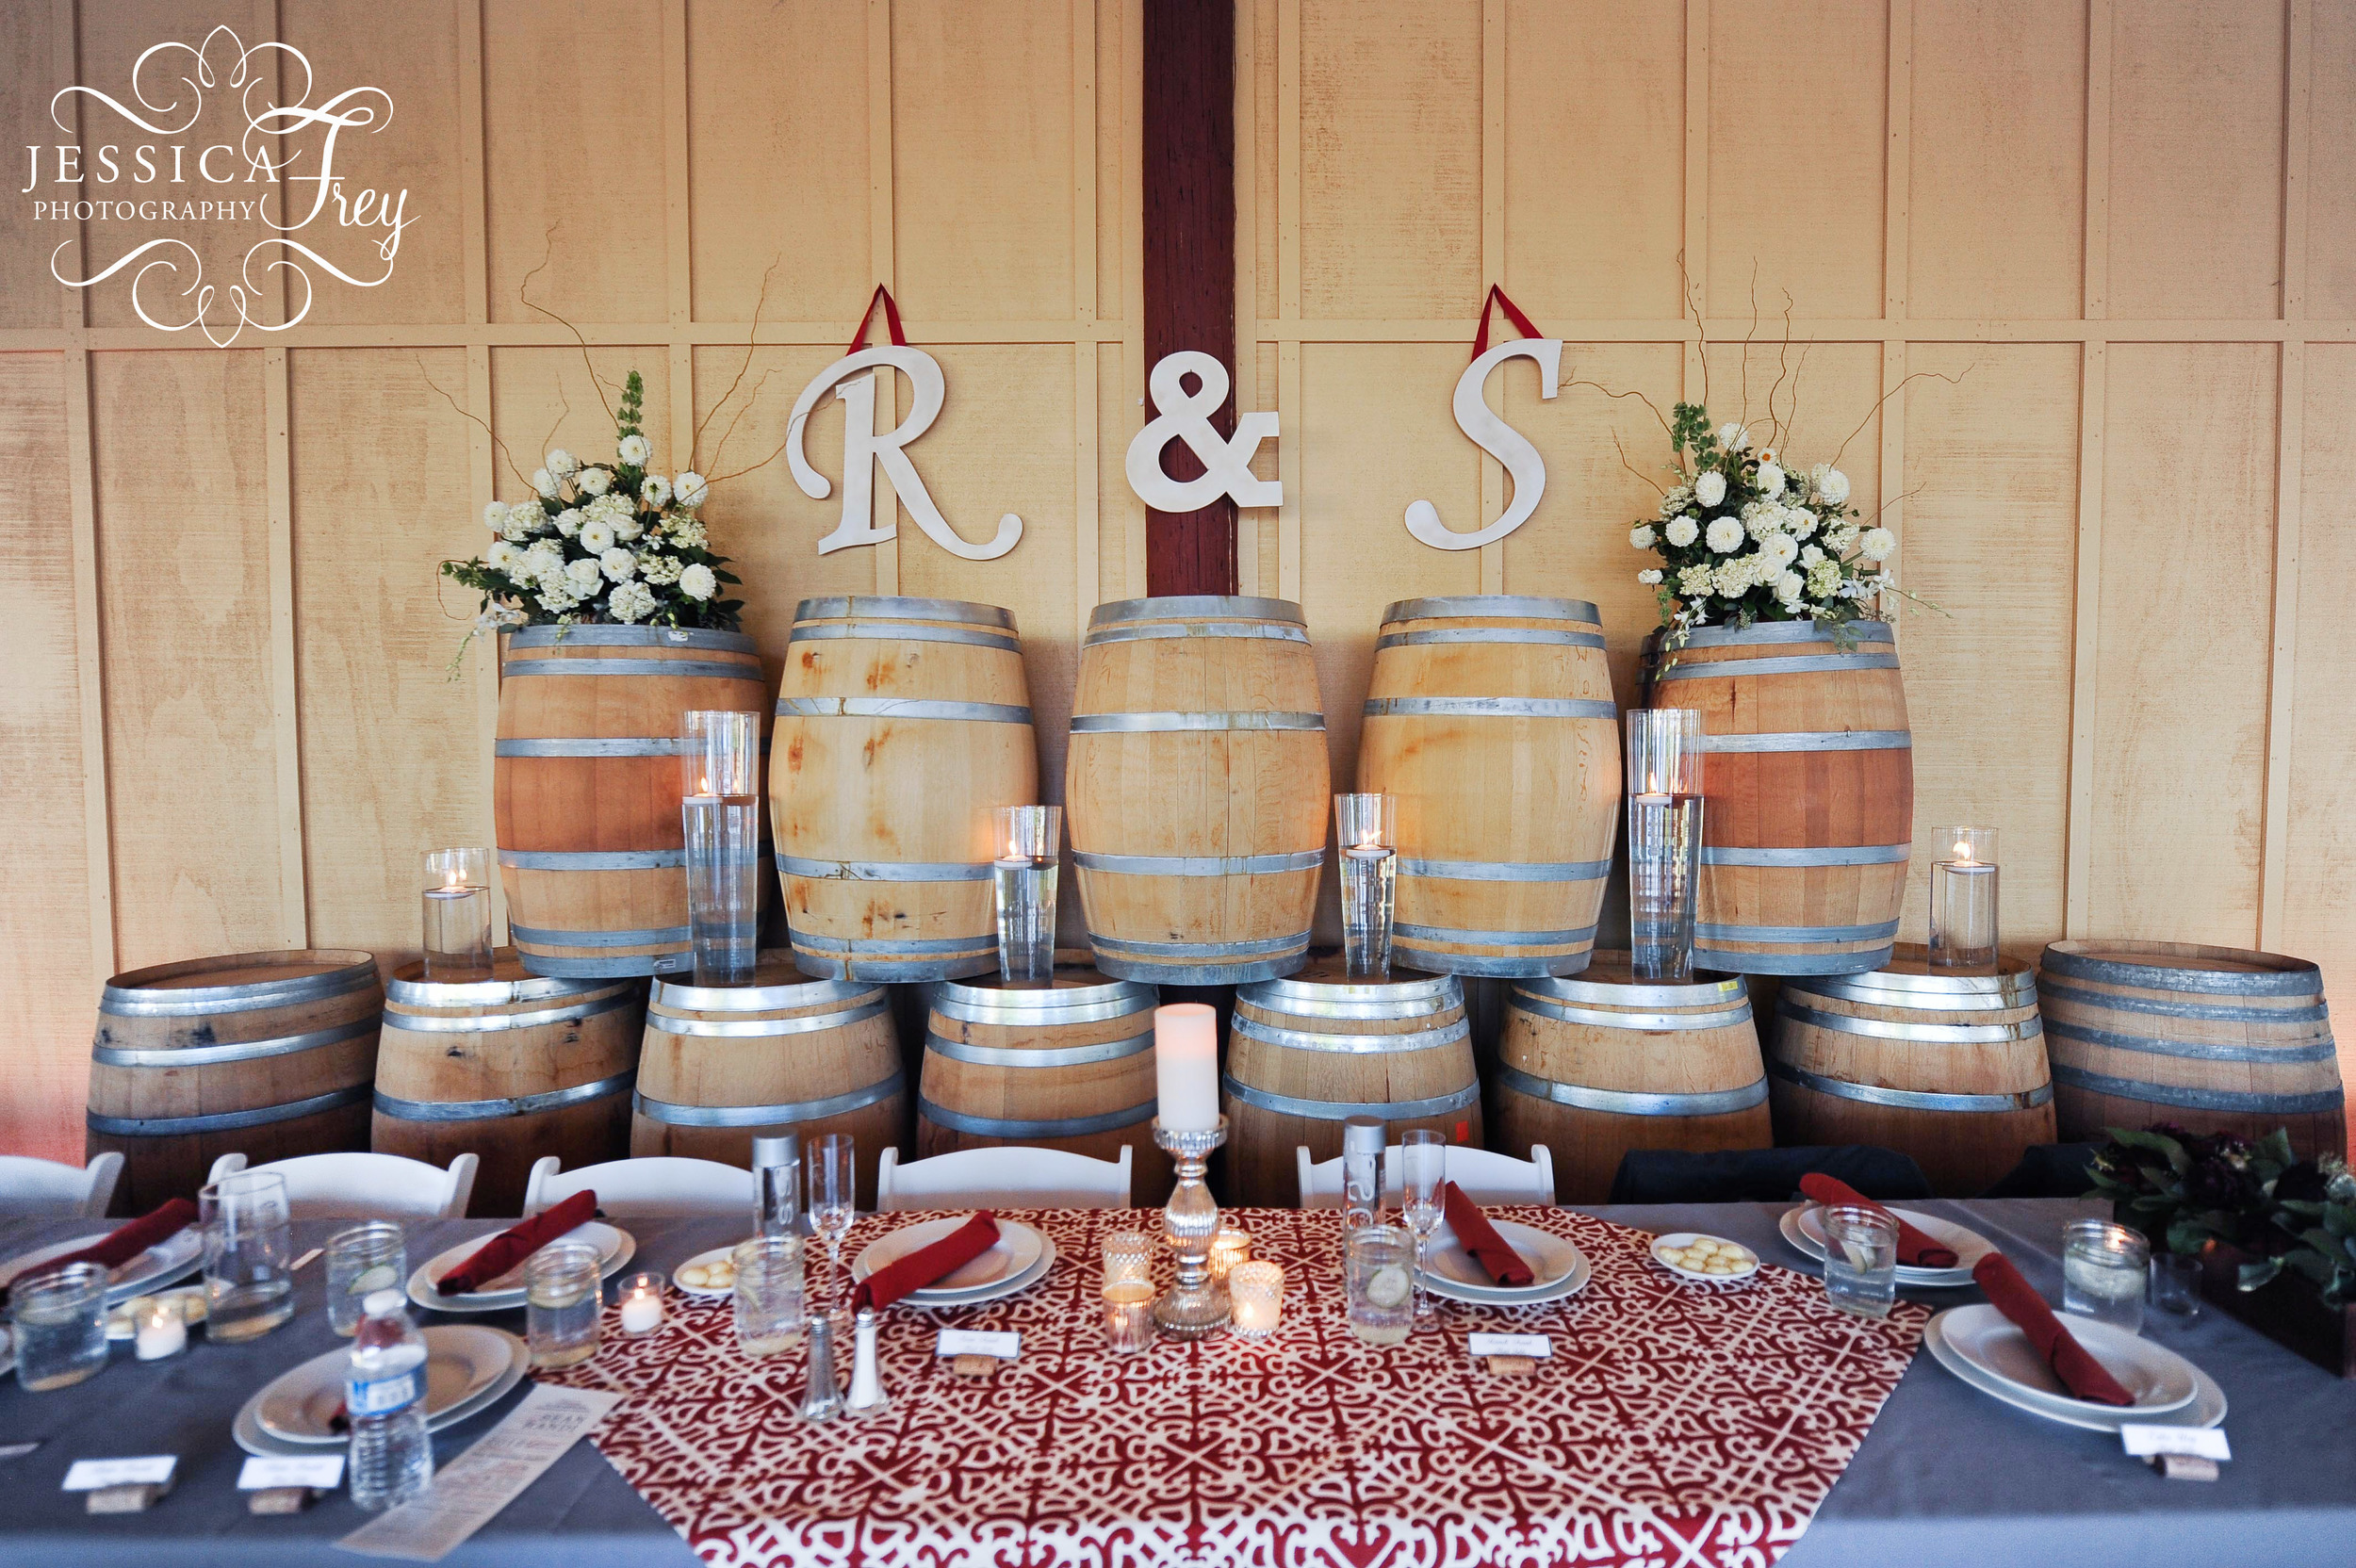 Jessica-Frey-Photography-winery-wedding-10.jpg